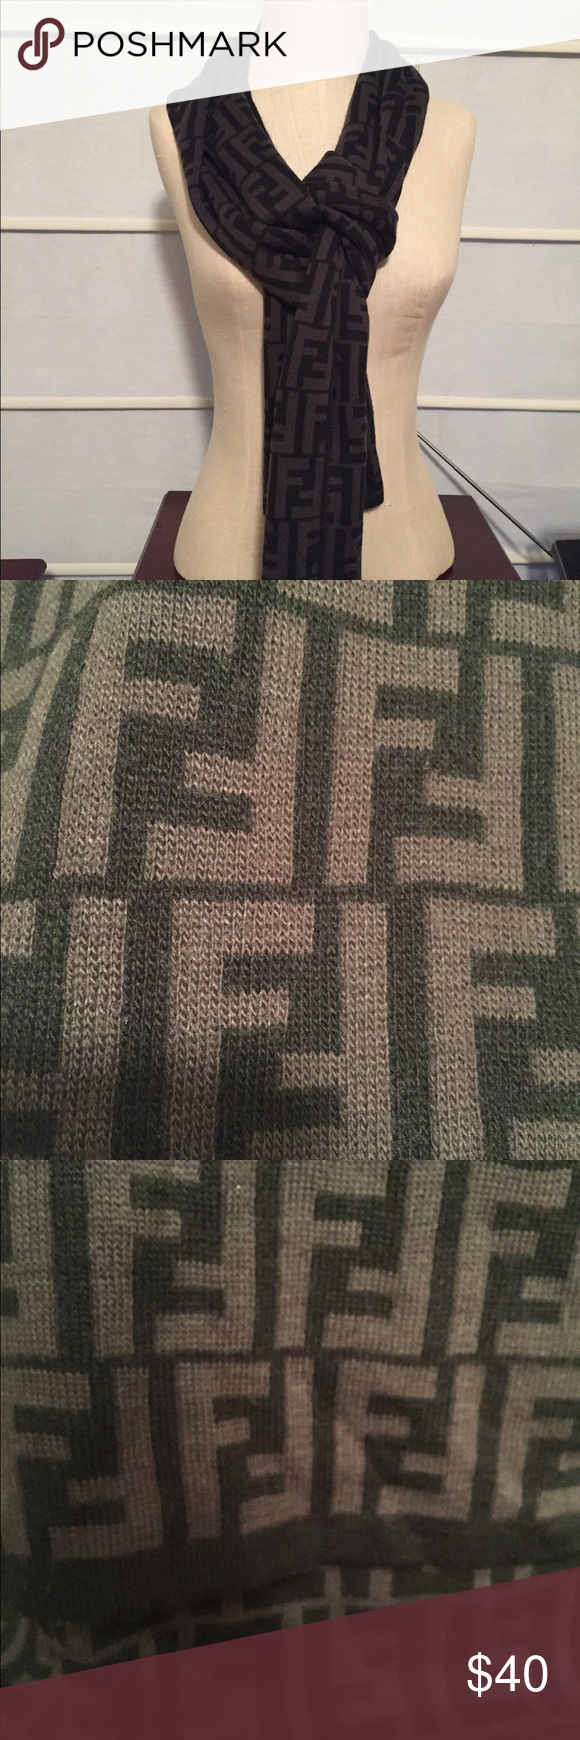 c35ef6ad Fendi Scarf This super warm scarf is in EUC. Gray and black. I ...